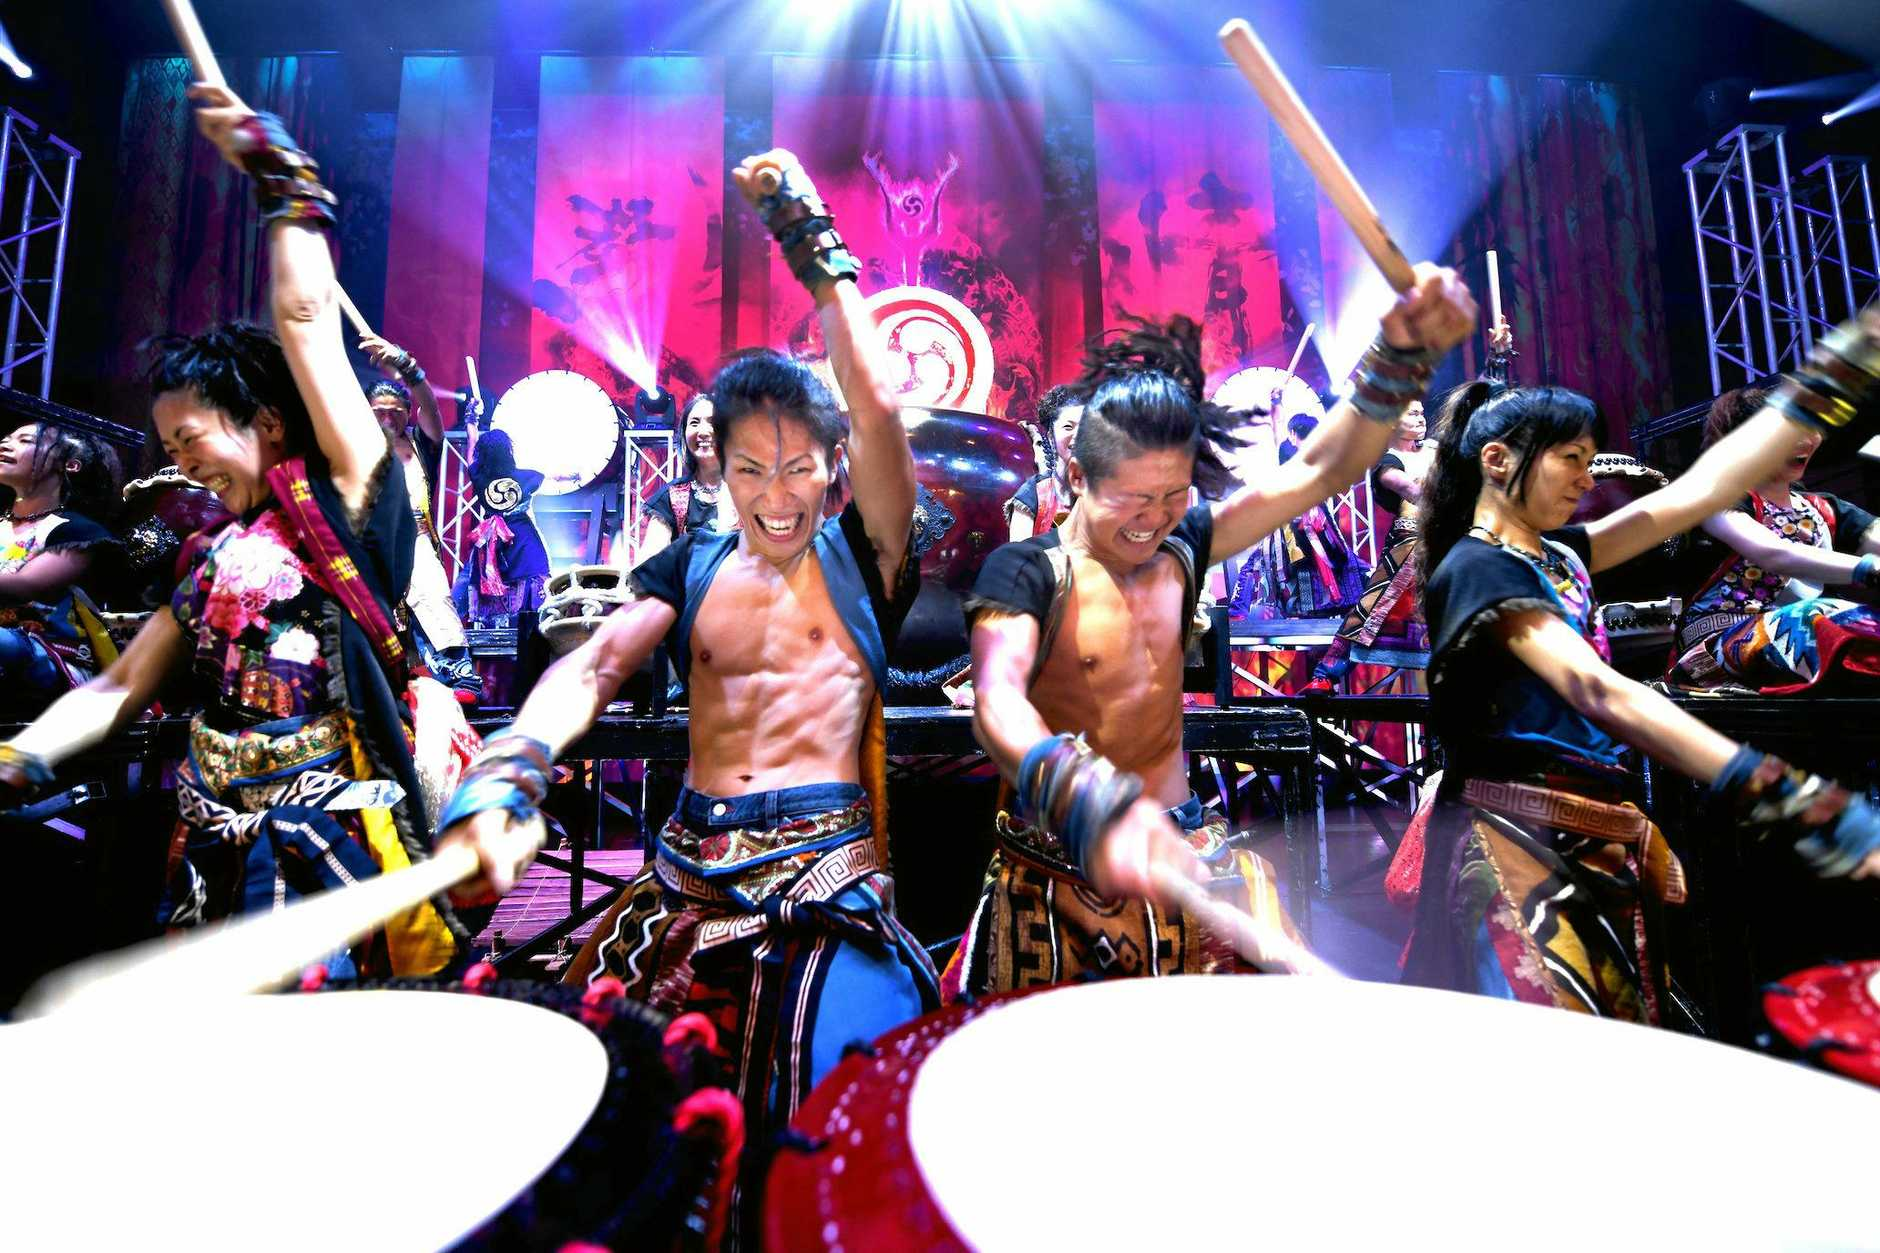 THUNDEROUS BEAT: Venue 114 will host an exclusive, world class drumming event, Yamato, on Sunday August 18.